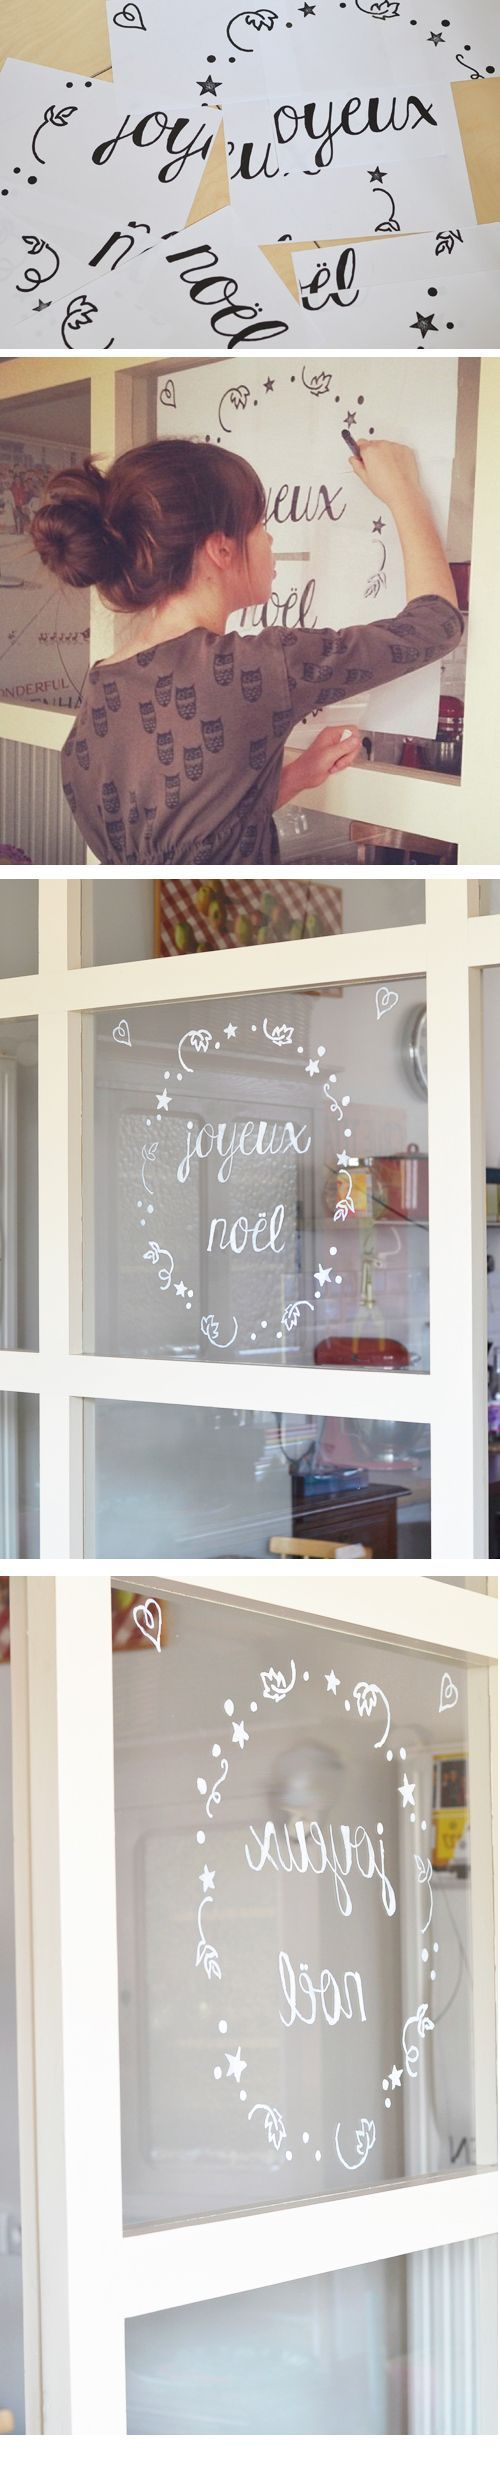 Joyeux Noël window decoration tutorial in French by L'encre violette with template. Lovely!